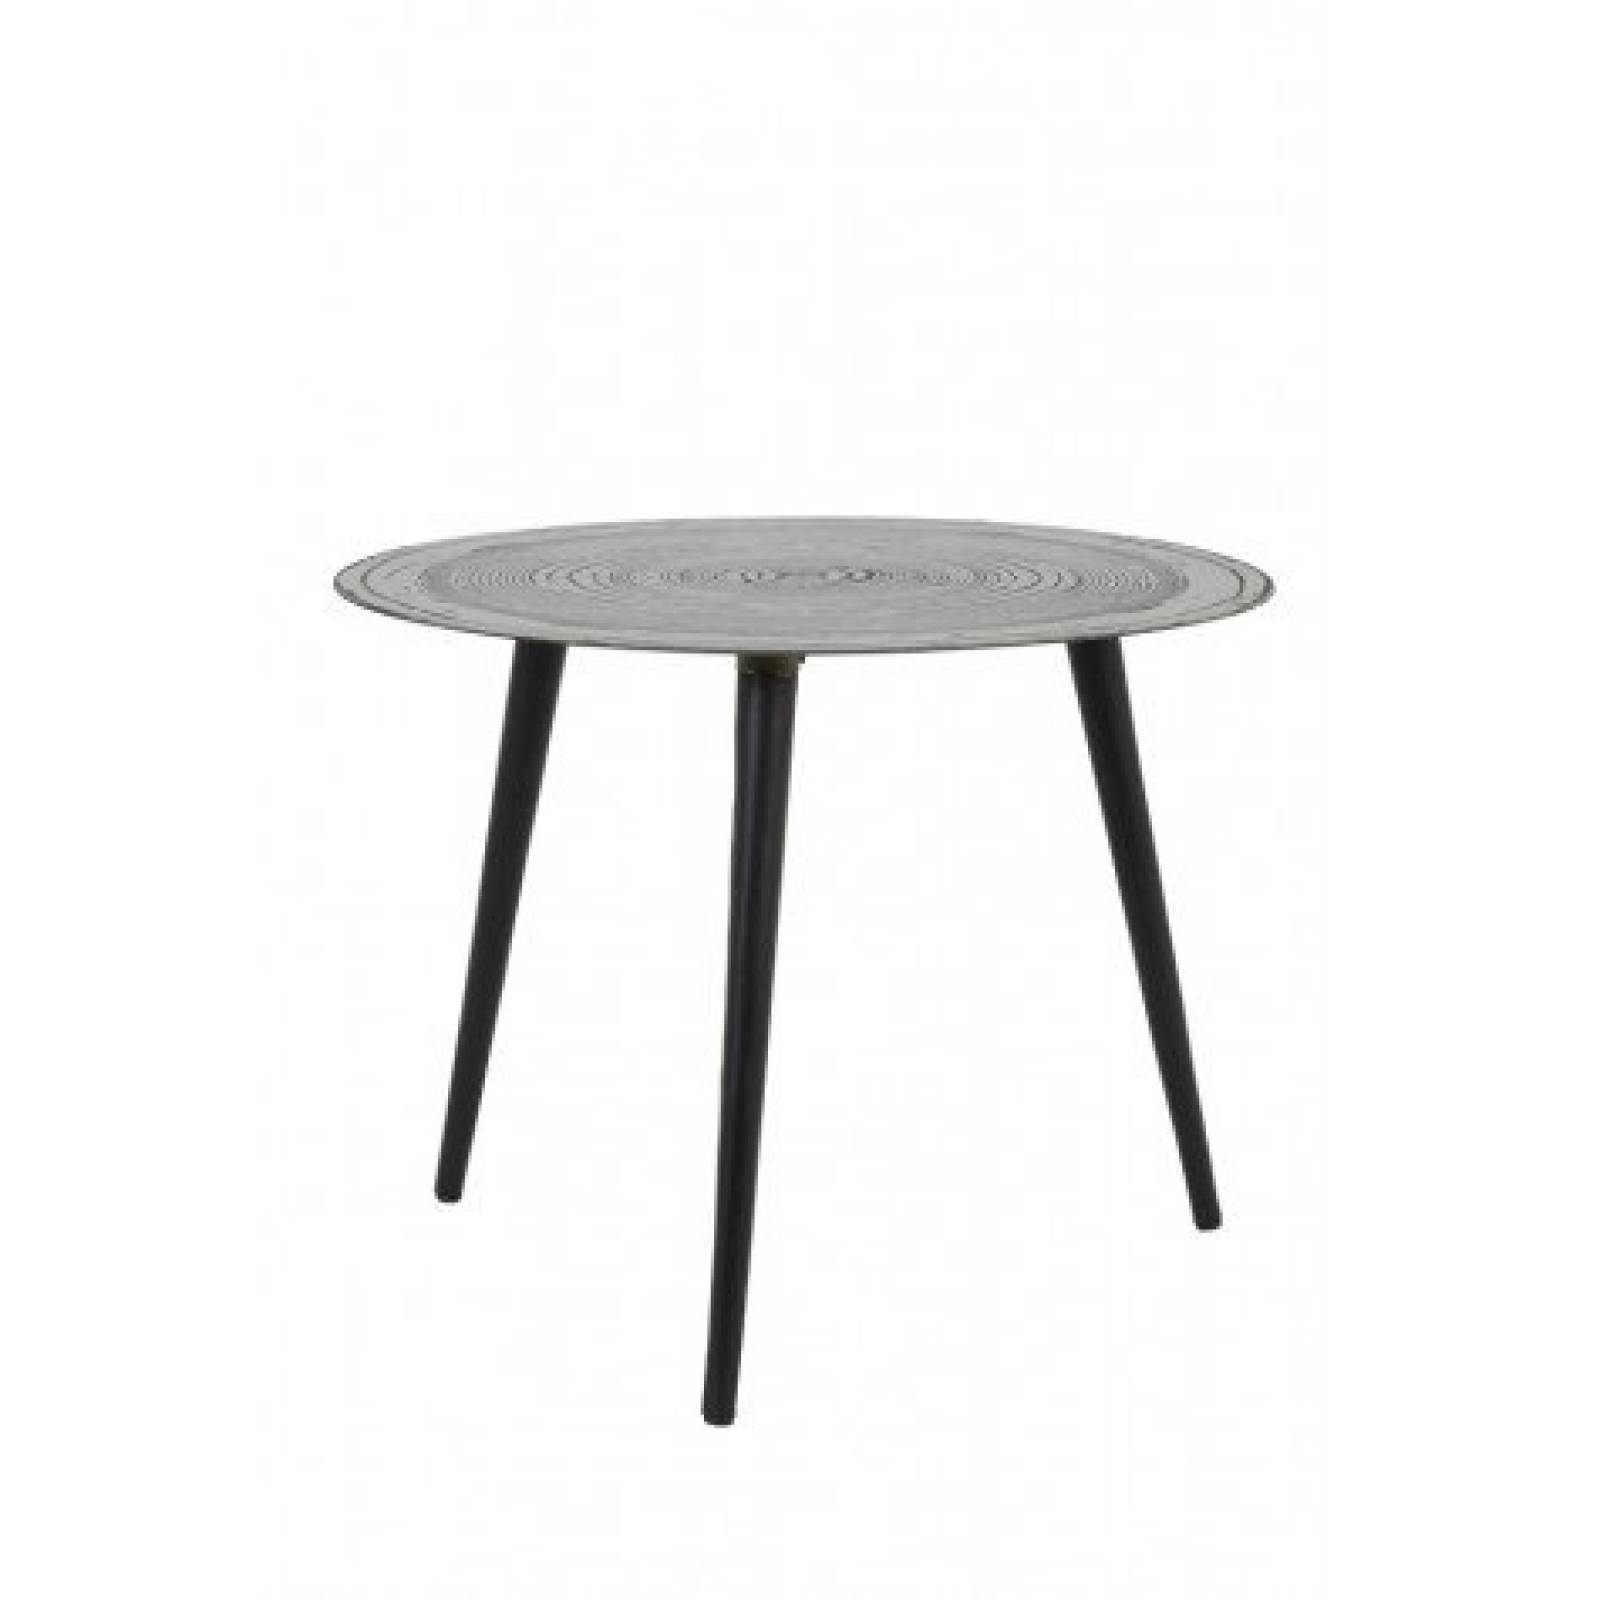 Trunk Circular Side Table In Matt Silver And Black 50x39